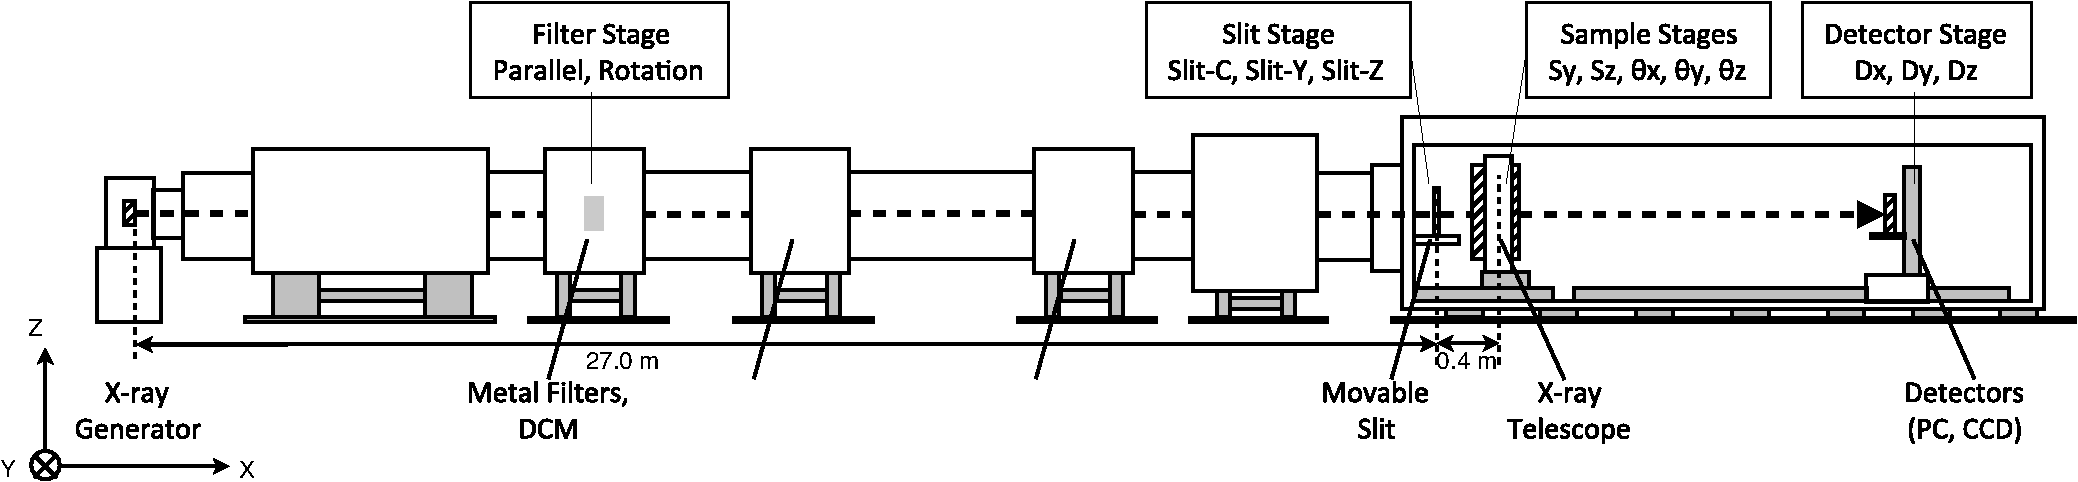 Ground Based X Ray Calibration Of The Astro H Hitomi Soft Machine Block Diagram Pdf Schematic View Isas Beam Facility Dcm Double Crystal Monochromator Pc Proportional Counter Ccd Charge Coupled Device